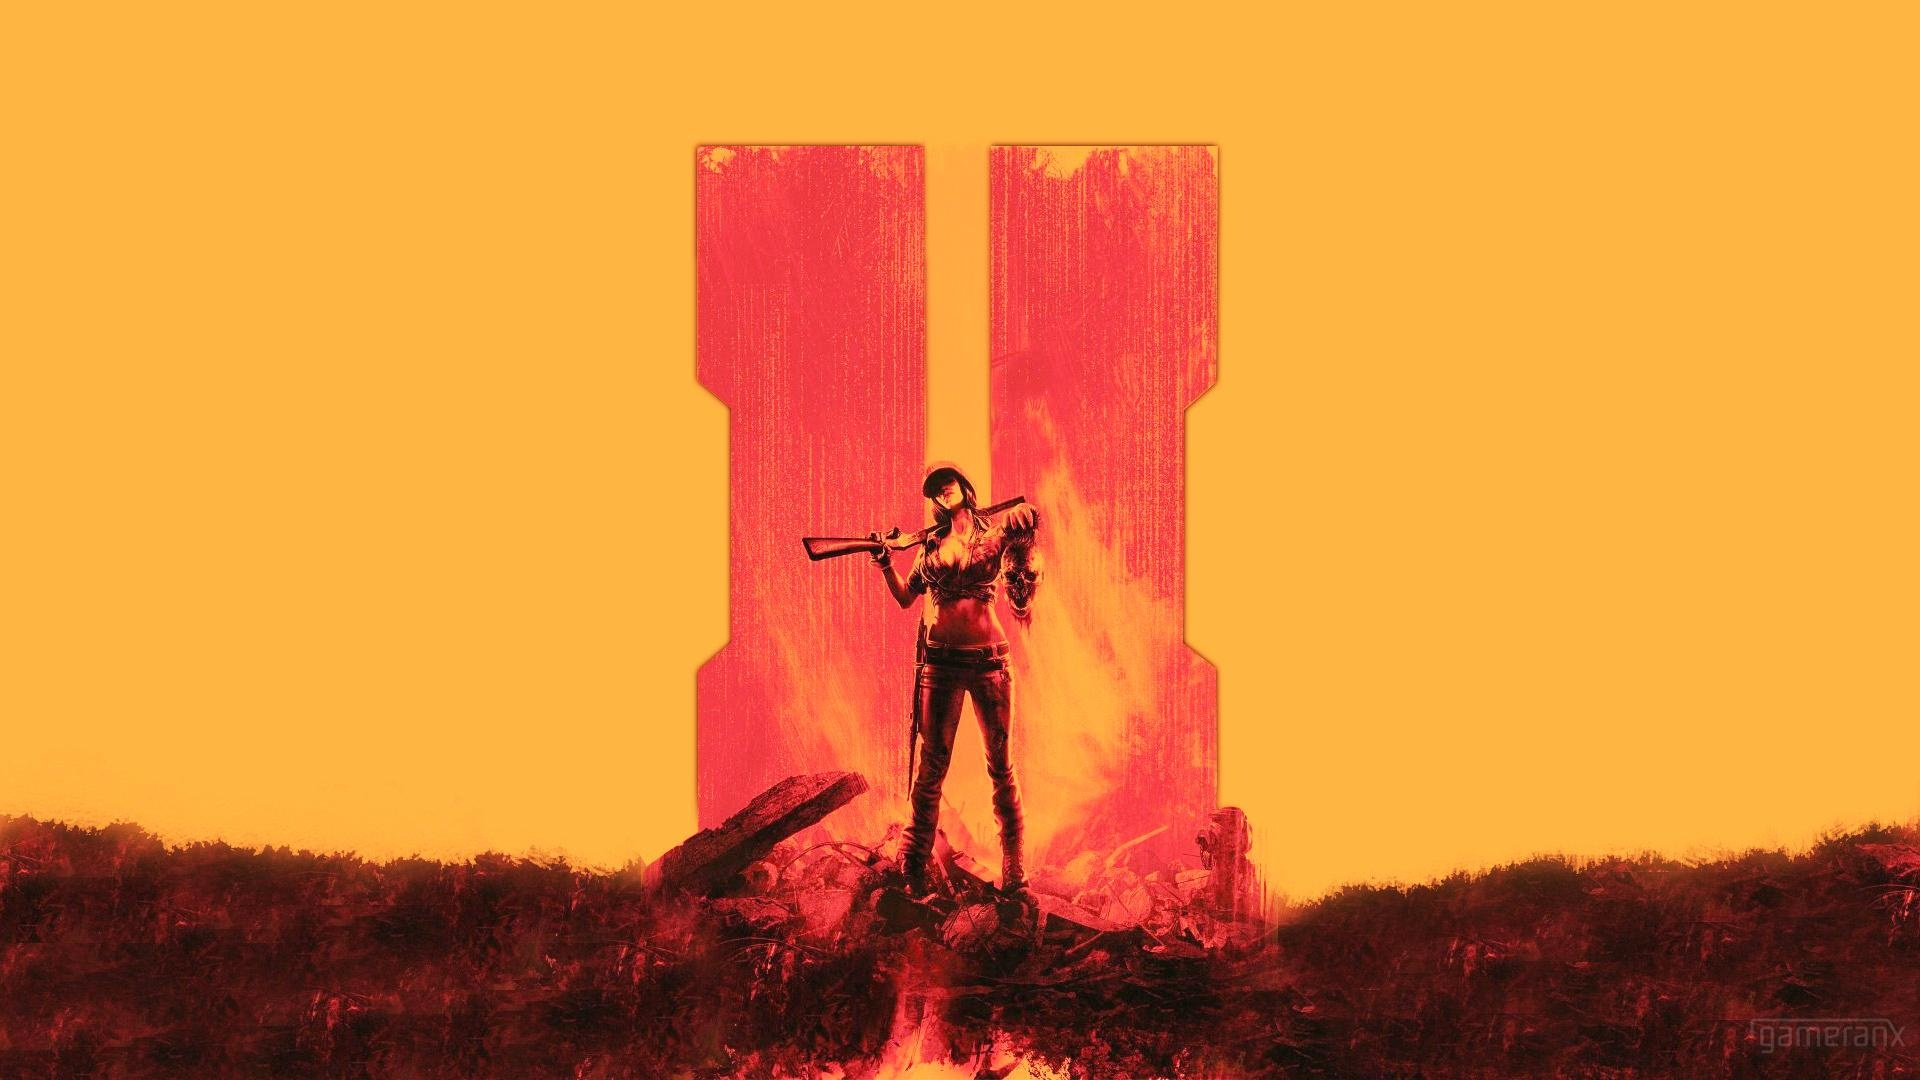 Call Of Duty Black Ops 2 Zombies Wallpapers